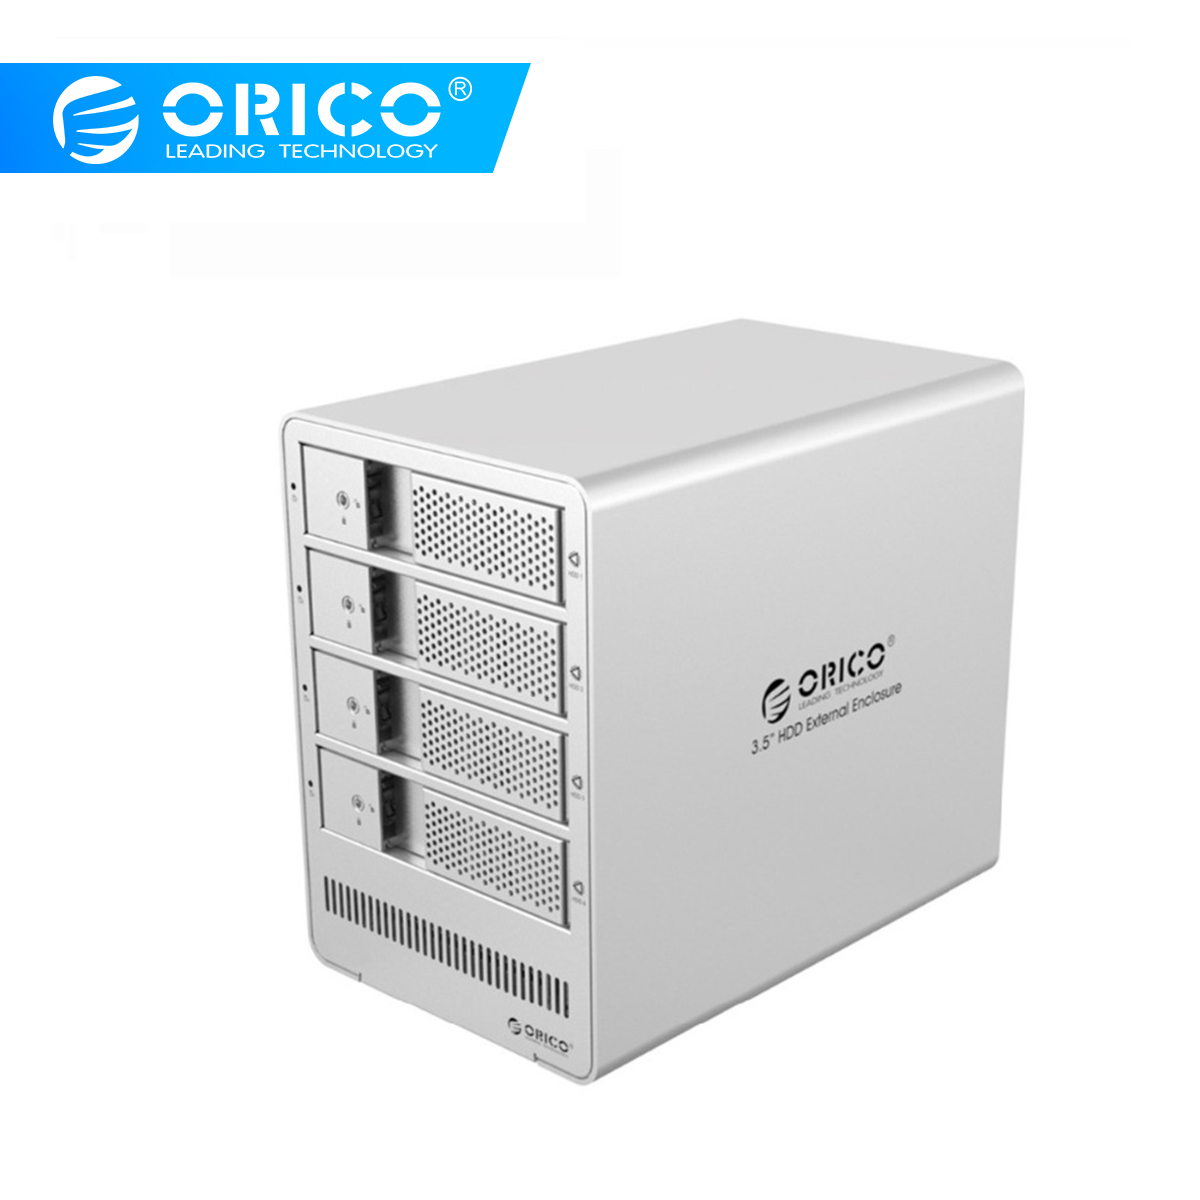 ORICO Tool Free 4 Bay 3.5 SATA Drive Enclosure HDD Case Aluminum Docking Station 5Gbps for Laptop PC